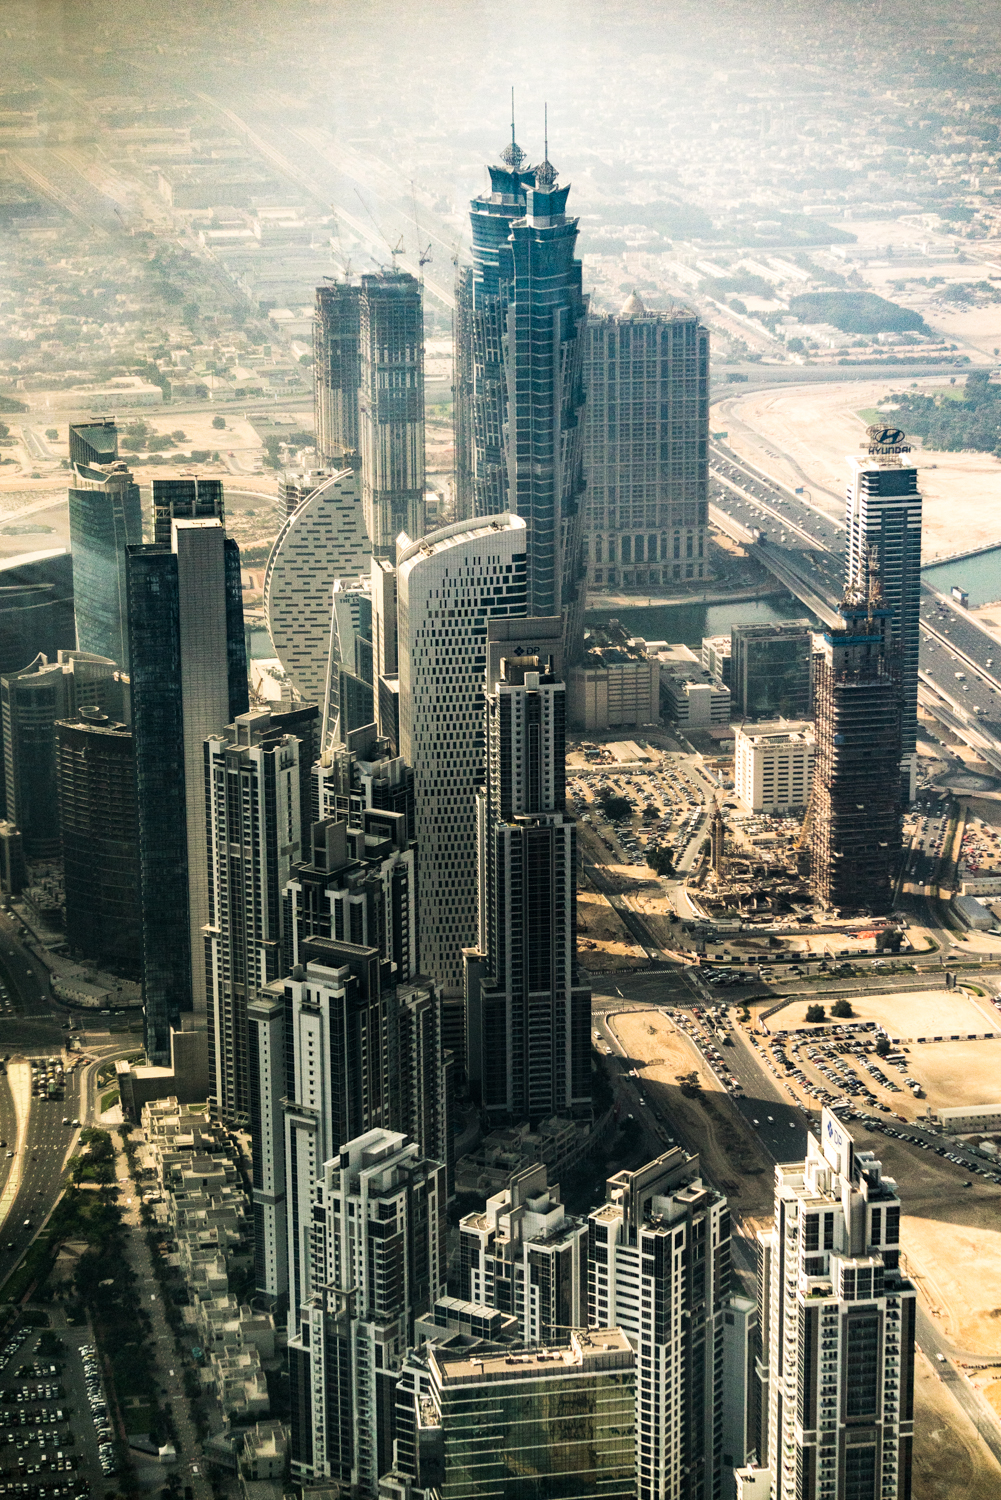 Some of the rapid construction in downtown Dubai.  A7RII, Sony 55-210mm f/4.5-6.3 (iso500, f/4.5, 1/1250s)